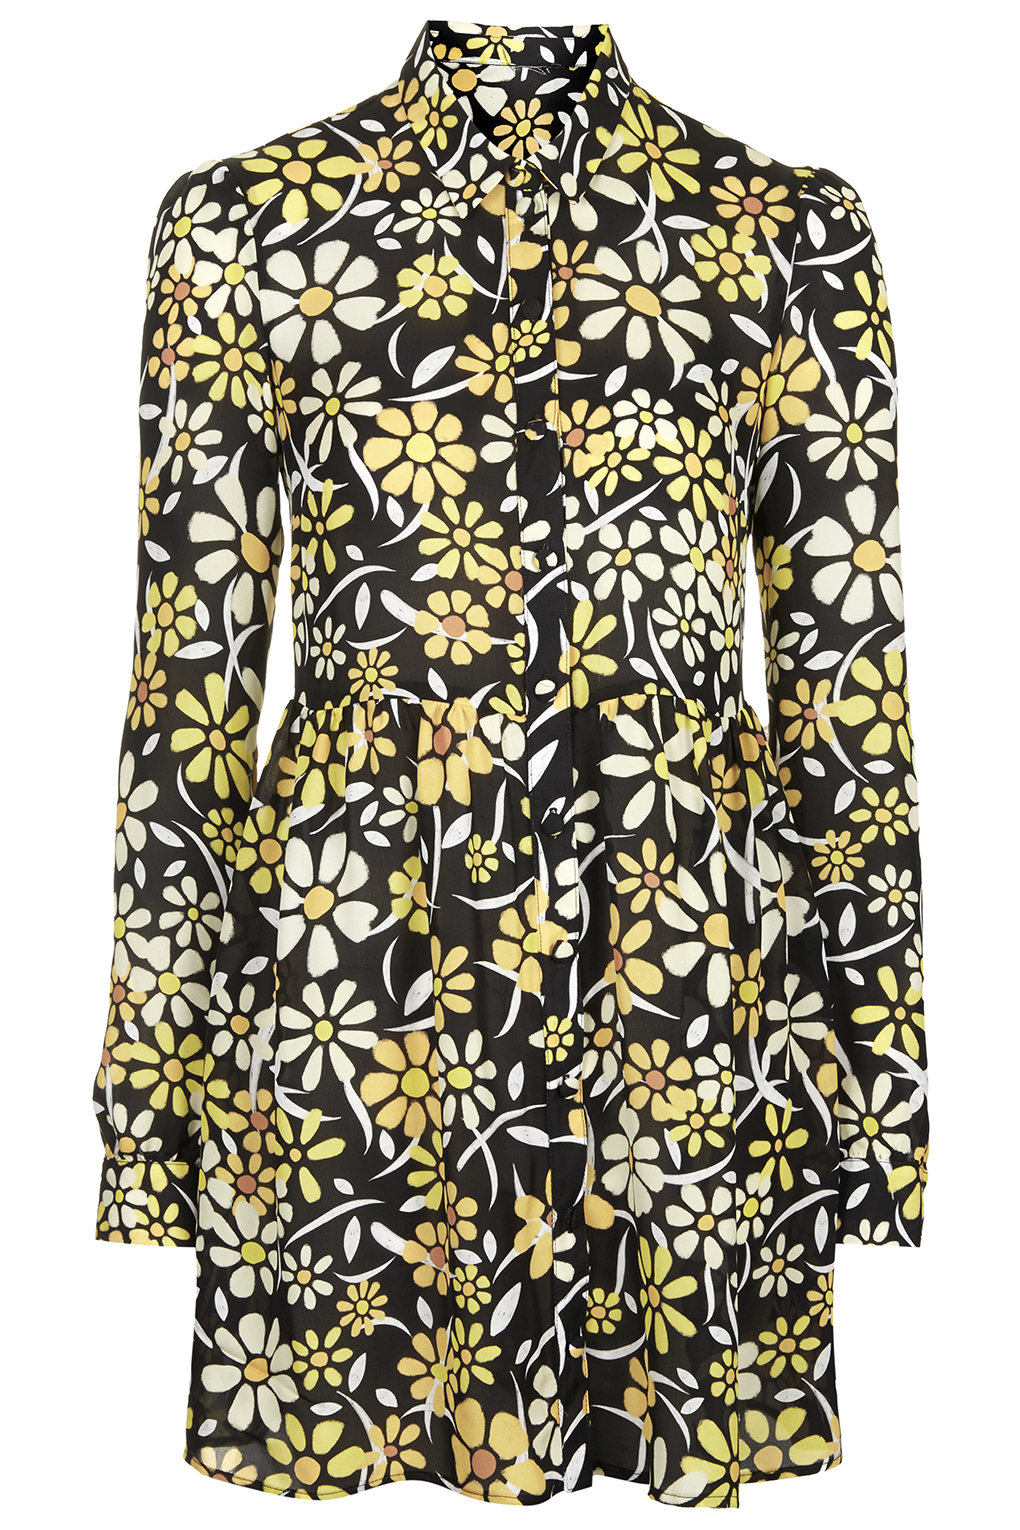 Living in New York, you have no idea how I am looking forward to spring. This Floral dress from Topshop is everything. YAS HONEY!  Daisy Print Shirt Dress  Price:  $105.00